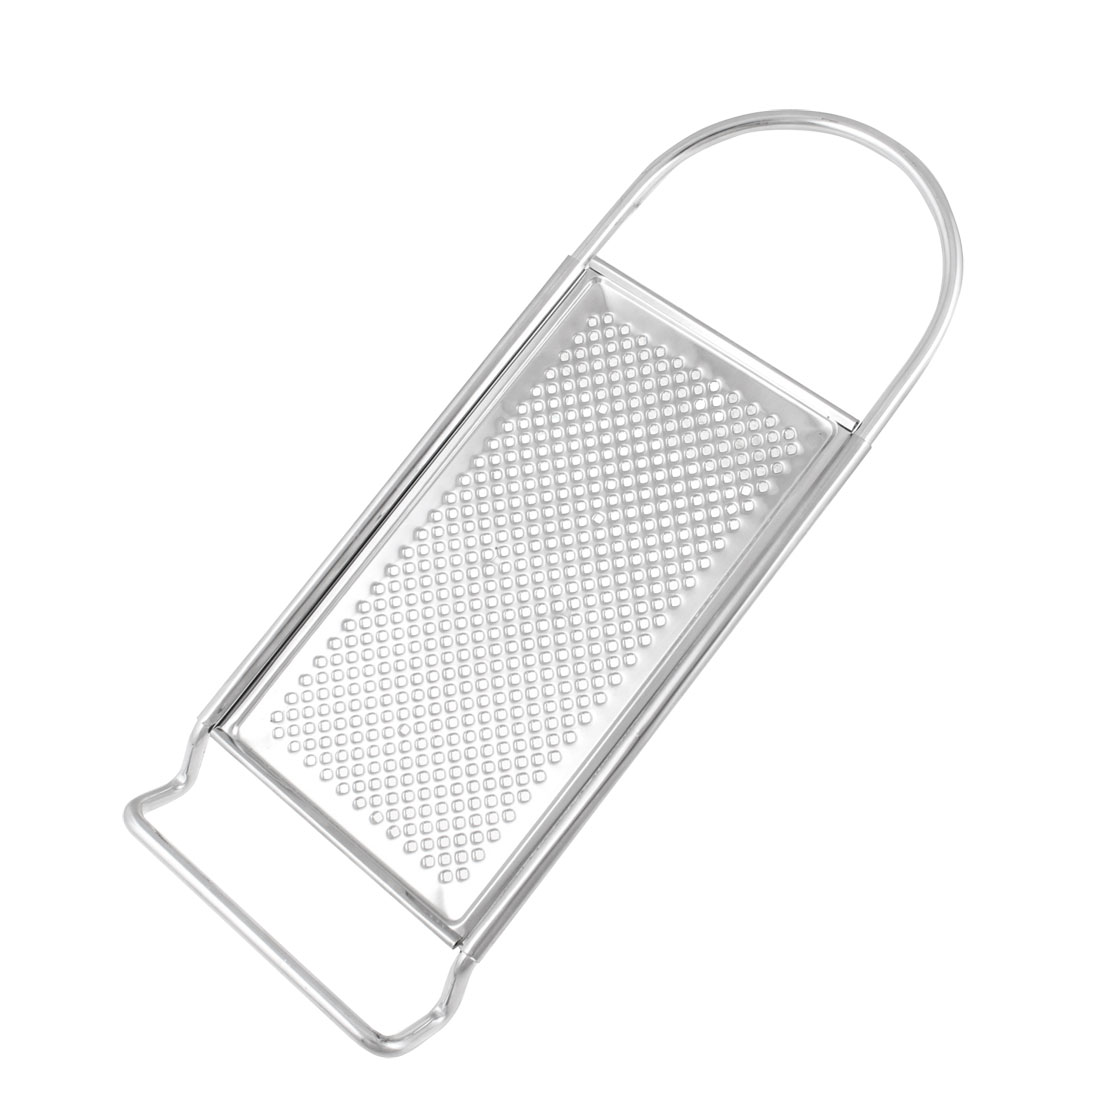 Silver Tone Stainless Steel Plane Zester Grater Kitchen Tool